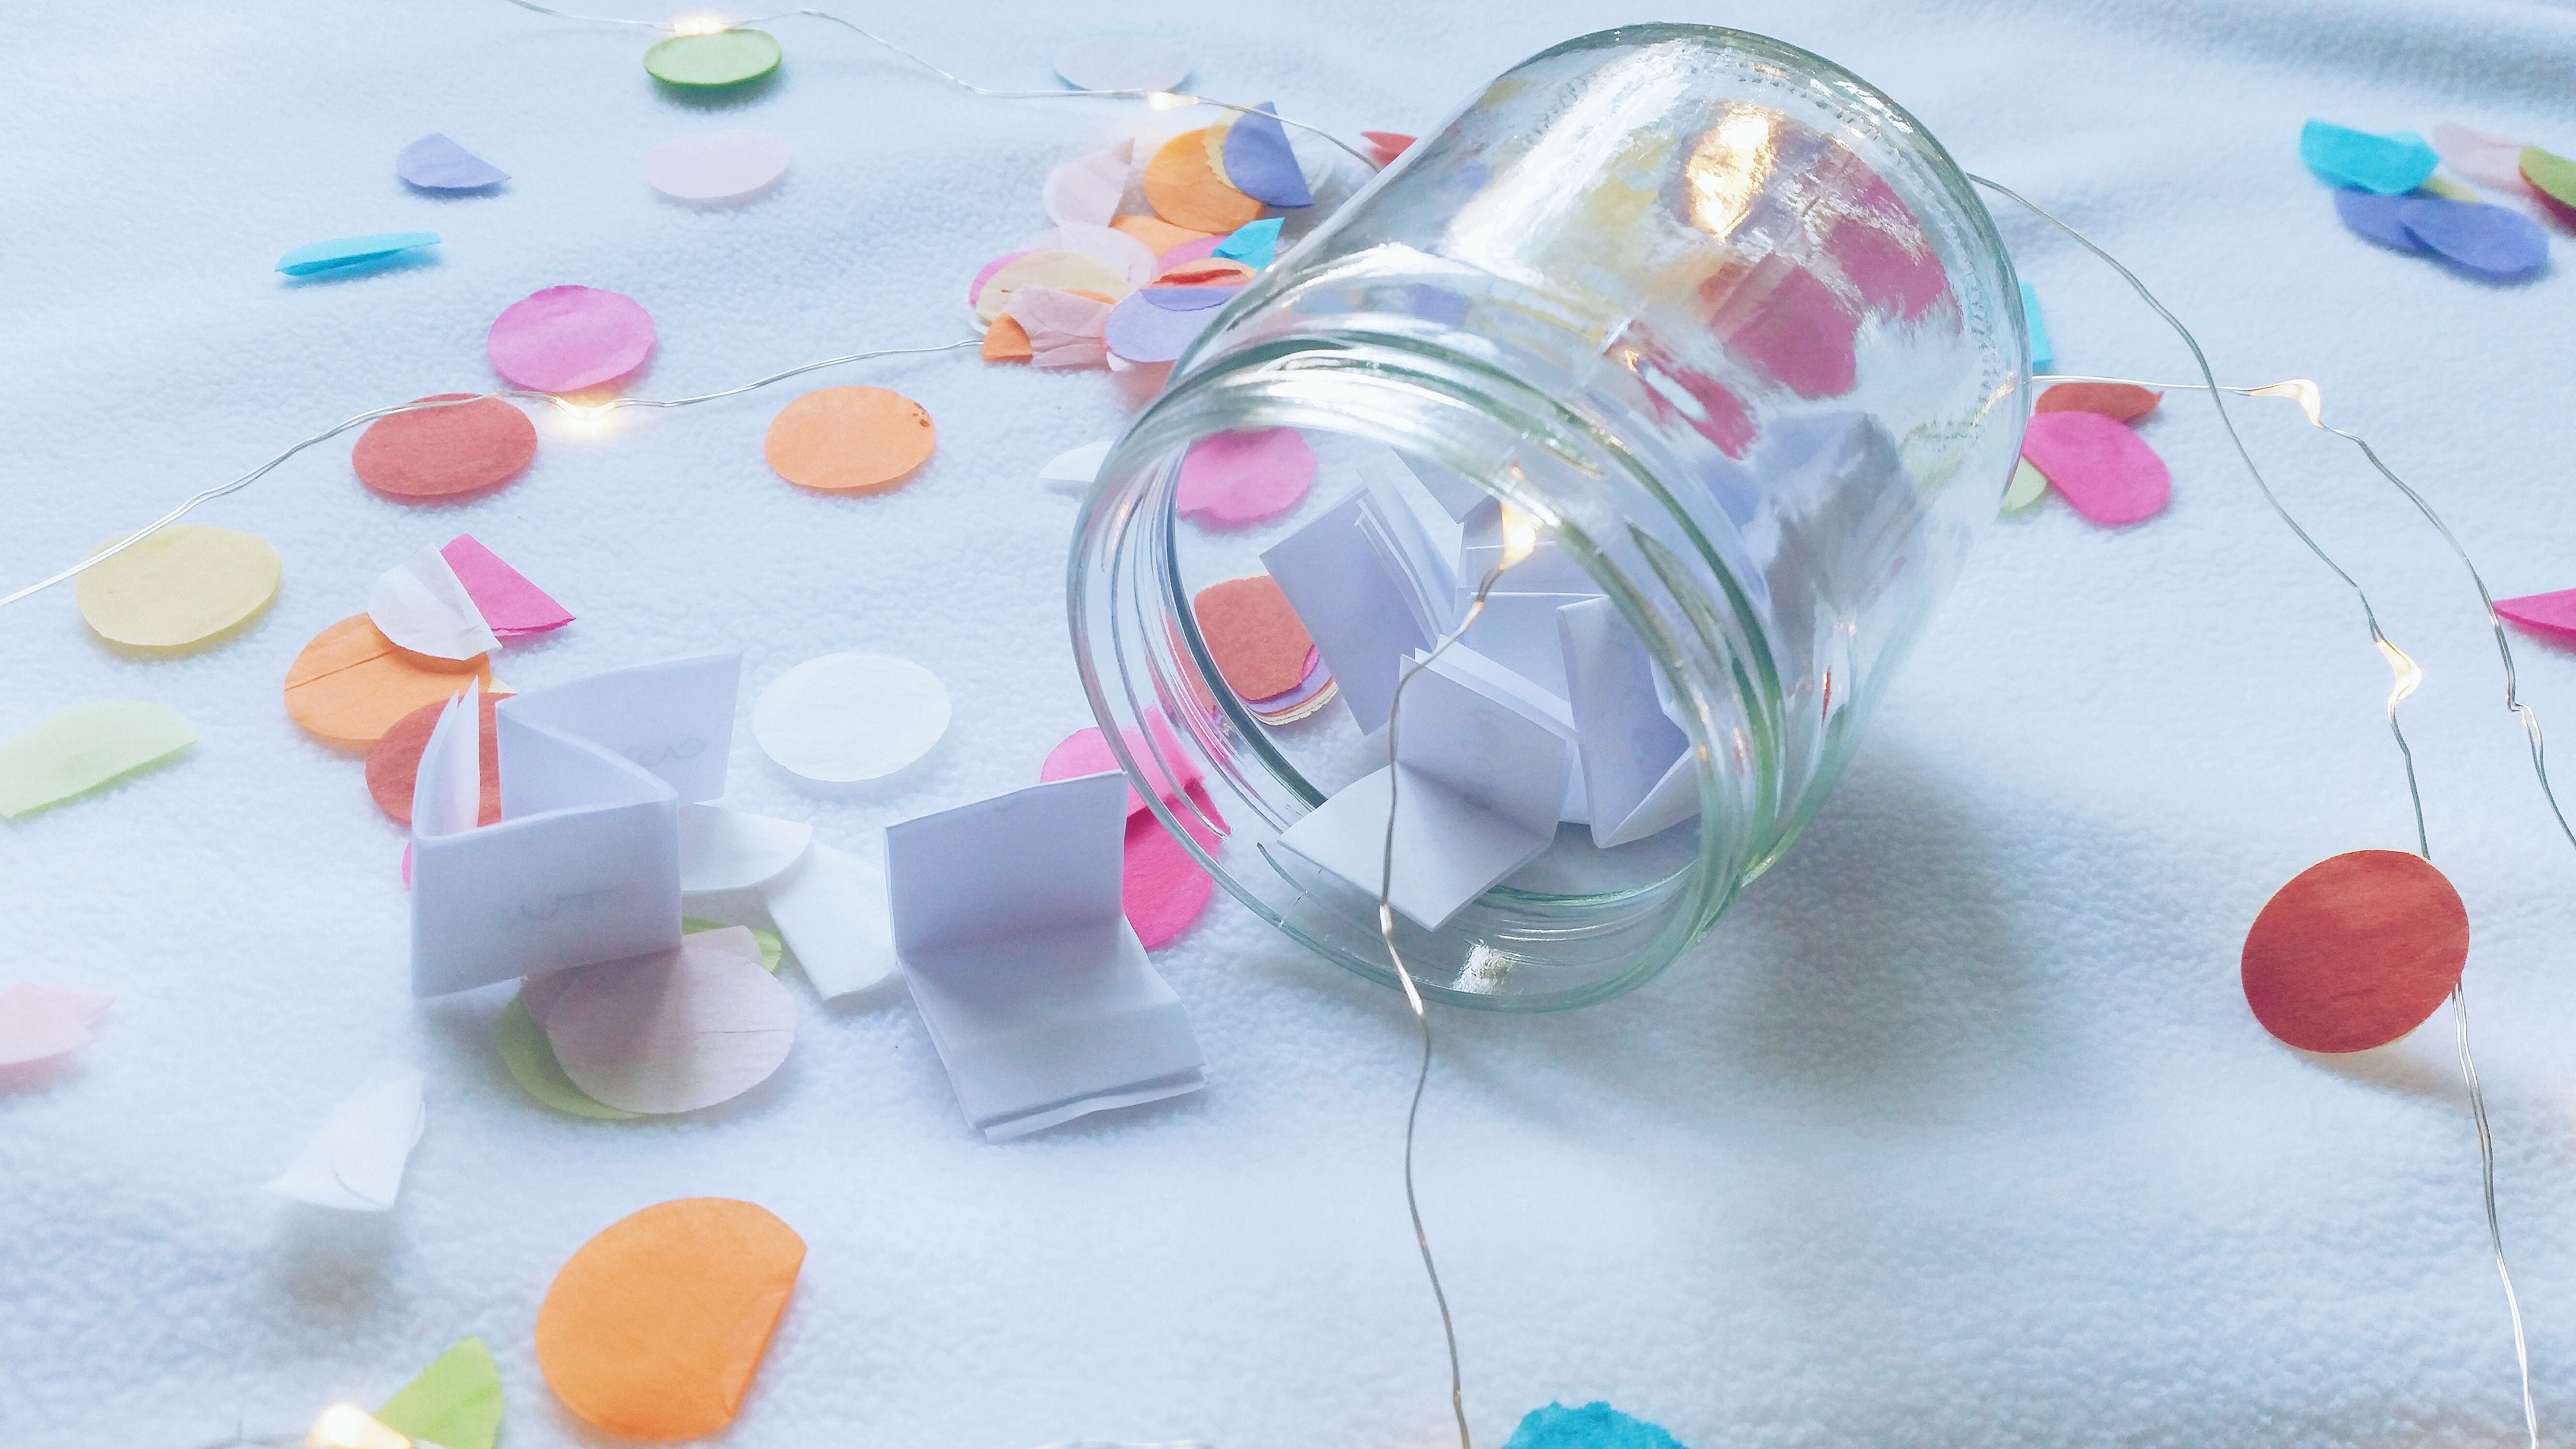 Glass wish jar filled with paper wishes on a table with confetti